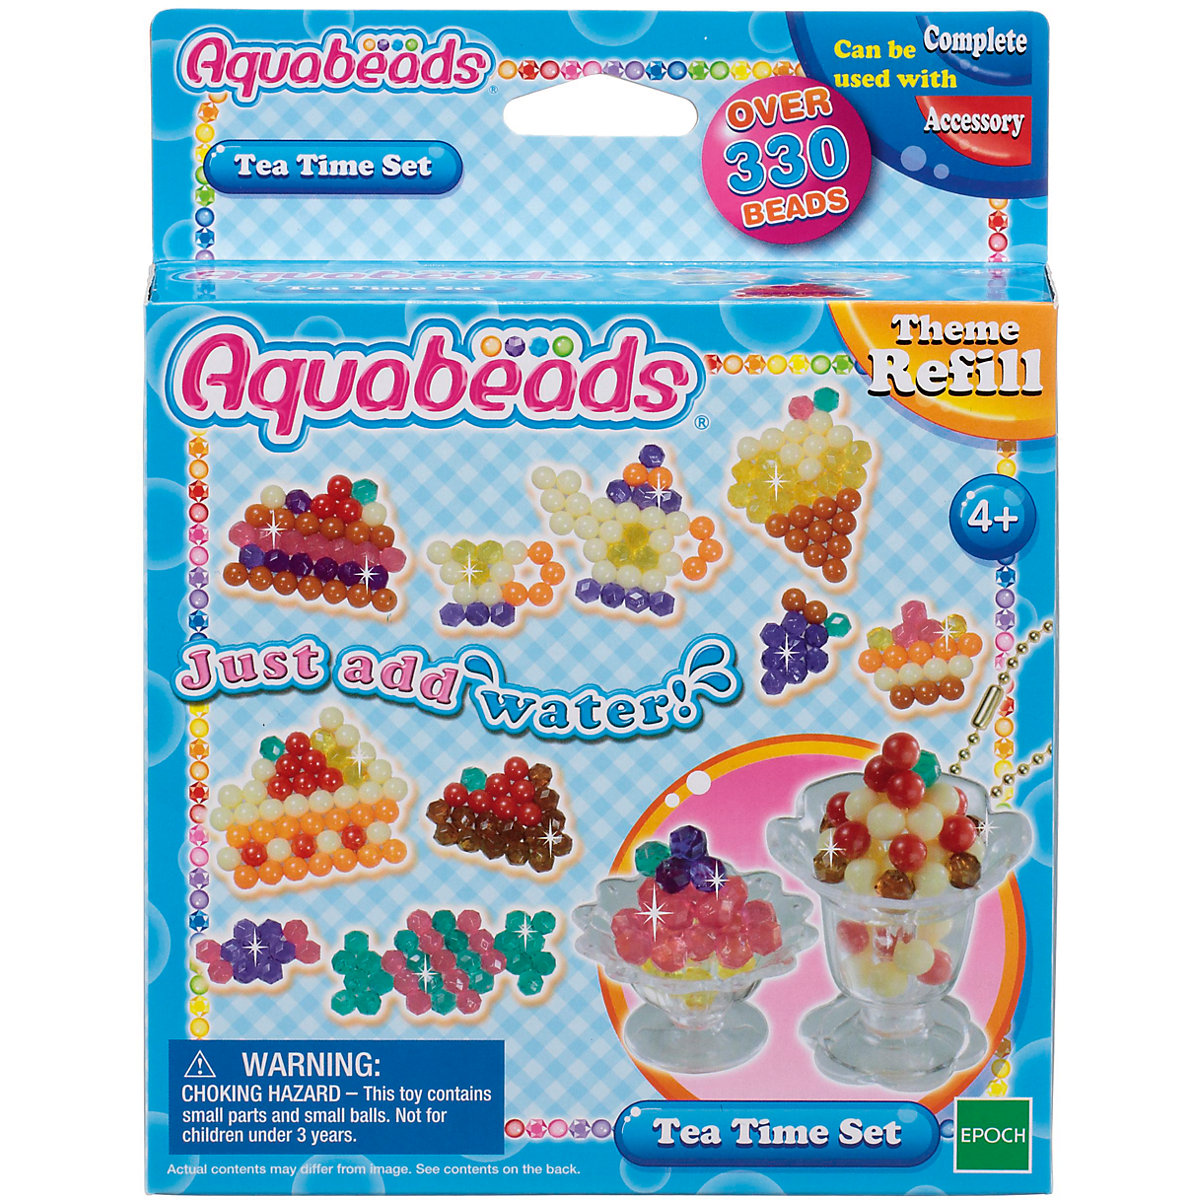 Aquabeads Beads Toys 7240126 Creativity Needlework For Children Set Kids Toy Hobbis Arts Crafts DIY